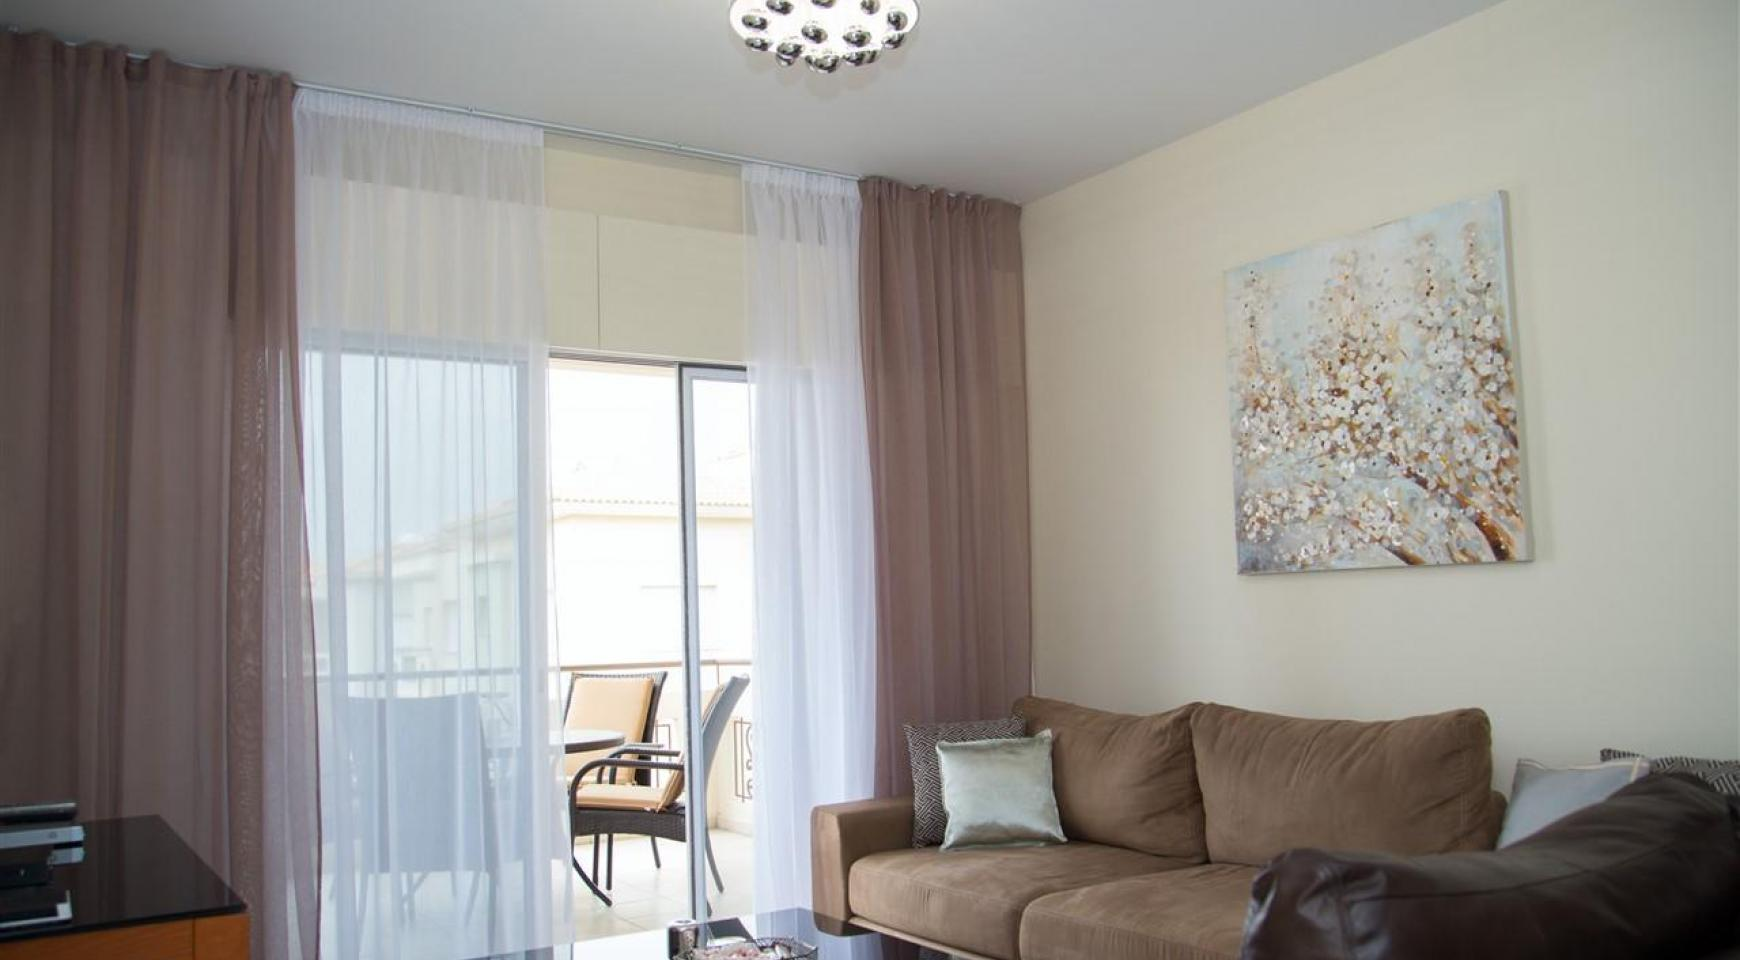 Luxury 2 Bedroom Apartment Mesogios Iris 304 in the Tourist area near the Beach - 6